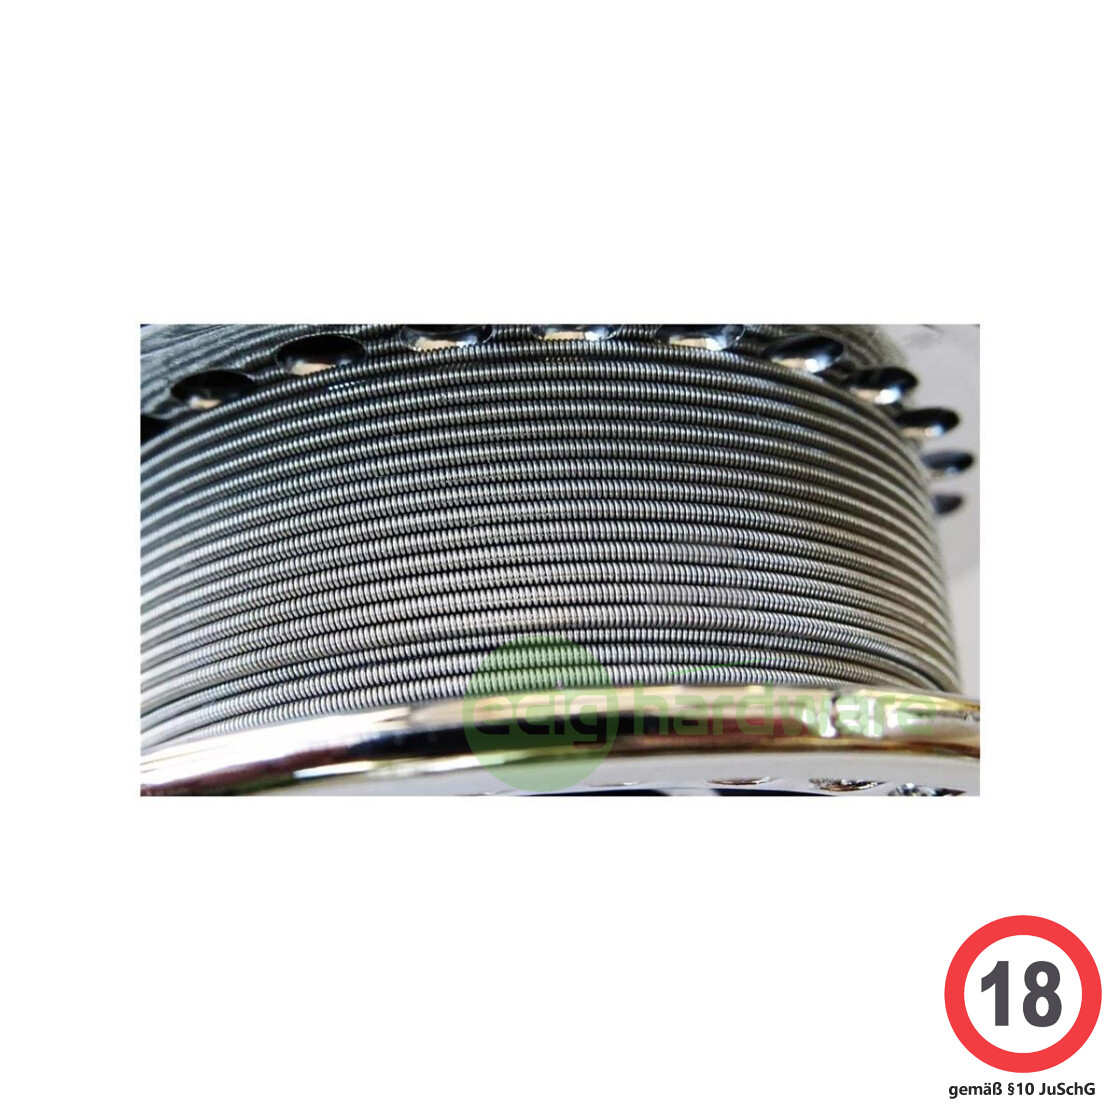 kanthal 90 Probably the best deal for a authentic ud kanthal a1 pre-coiled heating wire for rba atomizers (10-pack) 24 awg / 05mm dia / 05ohm usd 190 as of 9/7/2018 - free shipping worldwide on all orders prices unbelievably cheap.